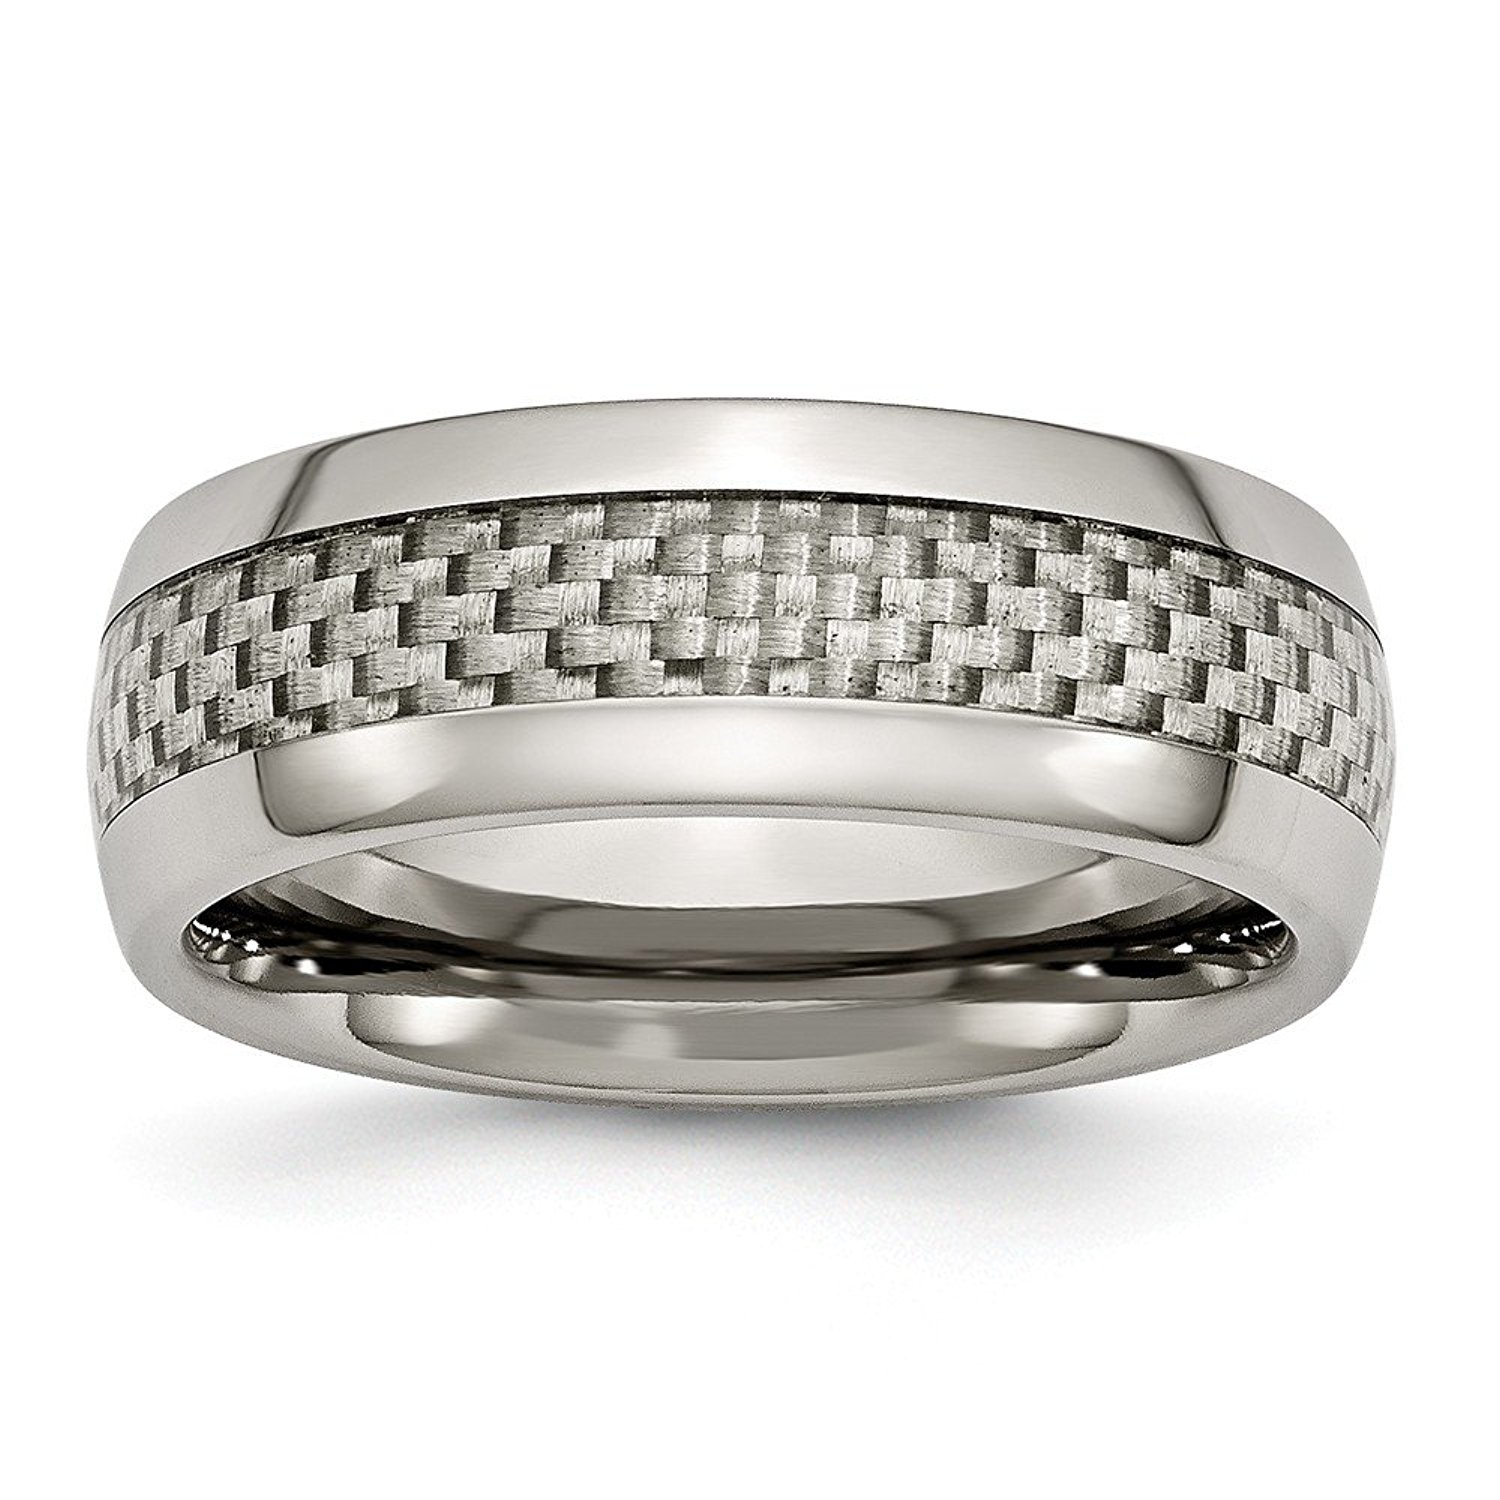 Brilliant Bijou Titanium 8mm Grooved Satin /& Polished Band